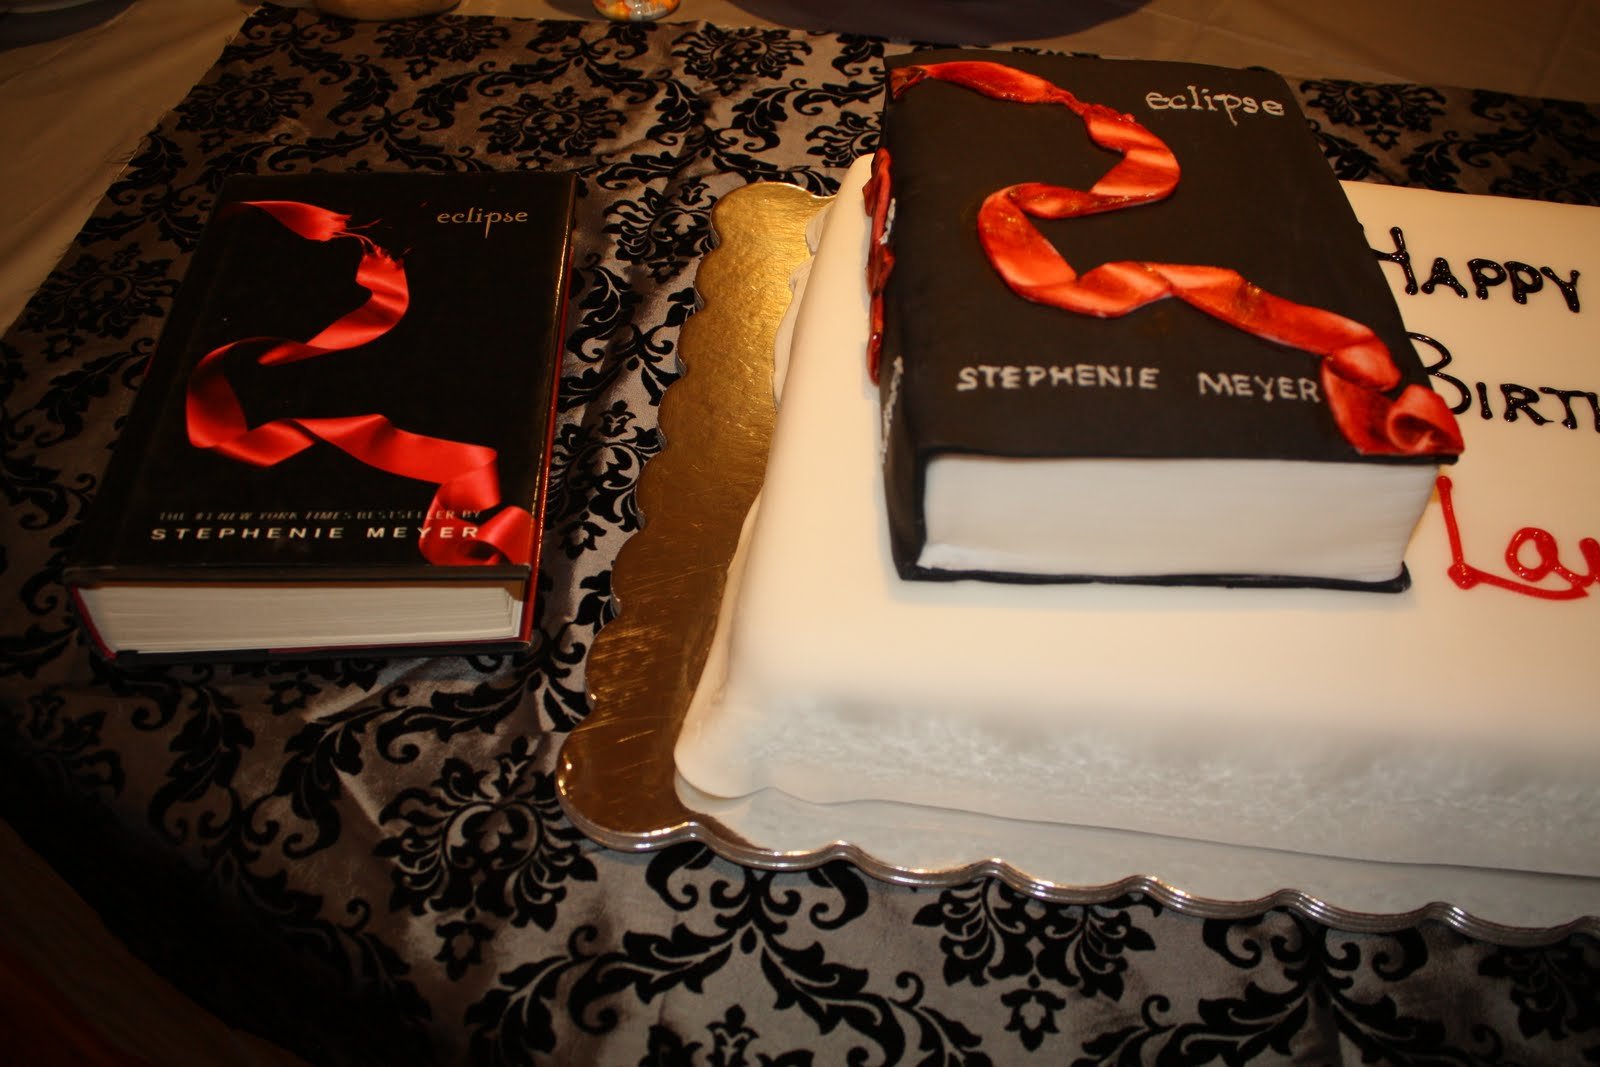 I Placed The Actual Eclipse Book Next To The Cake I Created The Cake  Version Of The Book, The Same Size As The Real Book